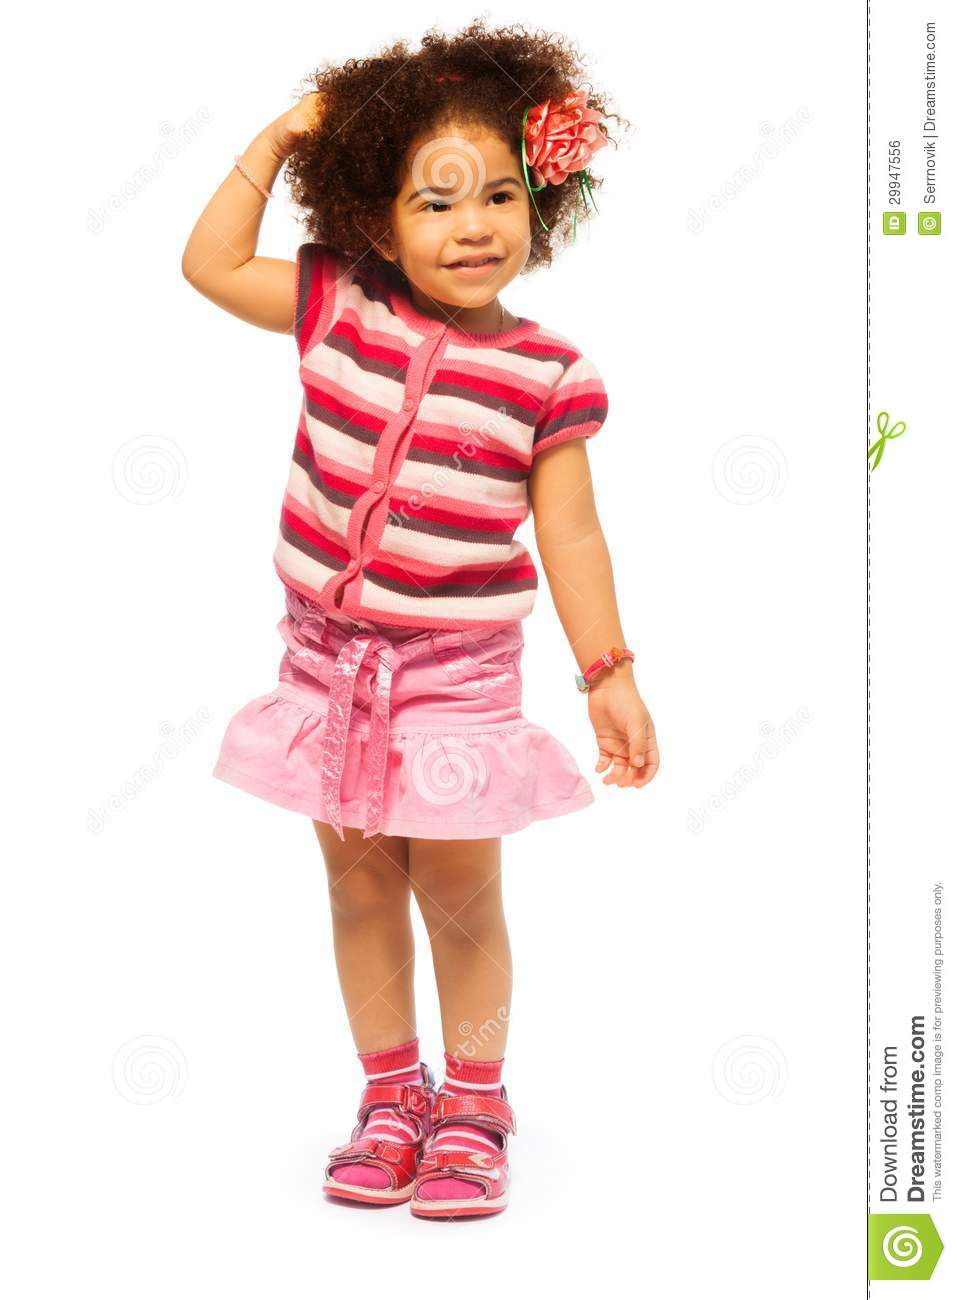 Beautiful 5 Years Old Black Girl Royalty Free Stock Image